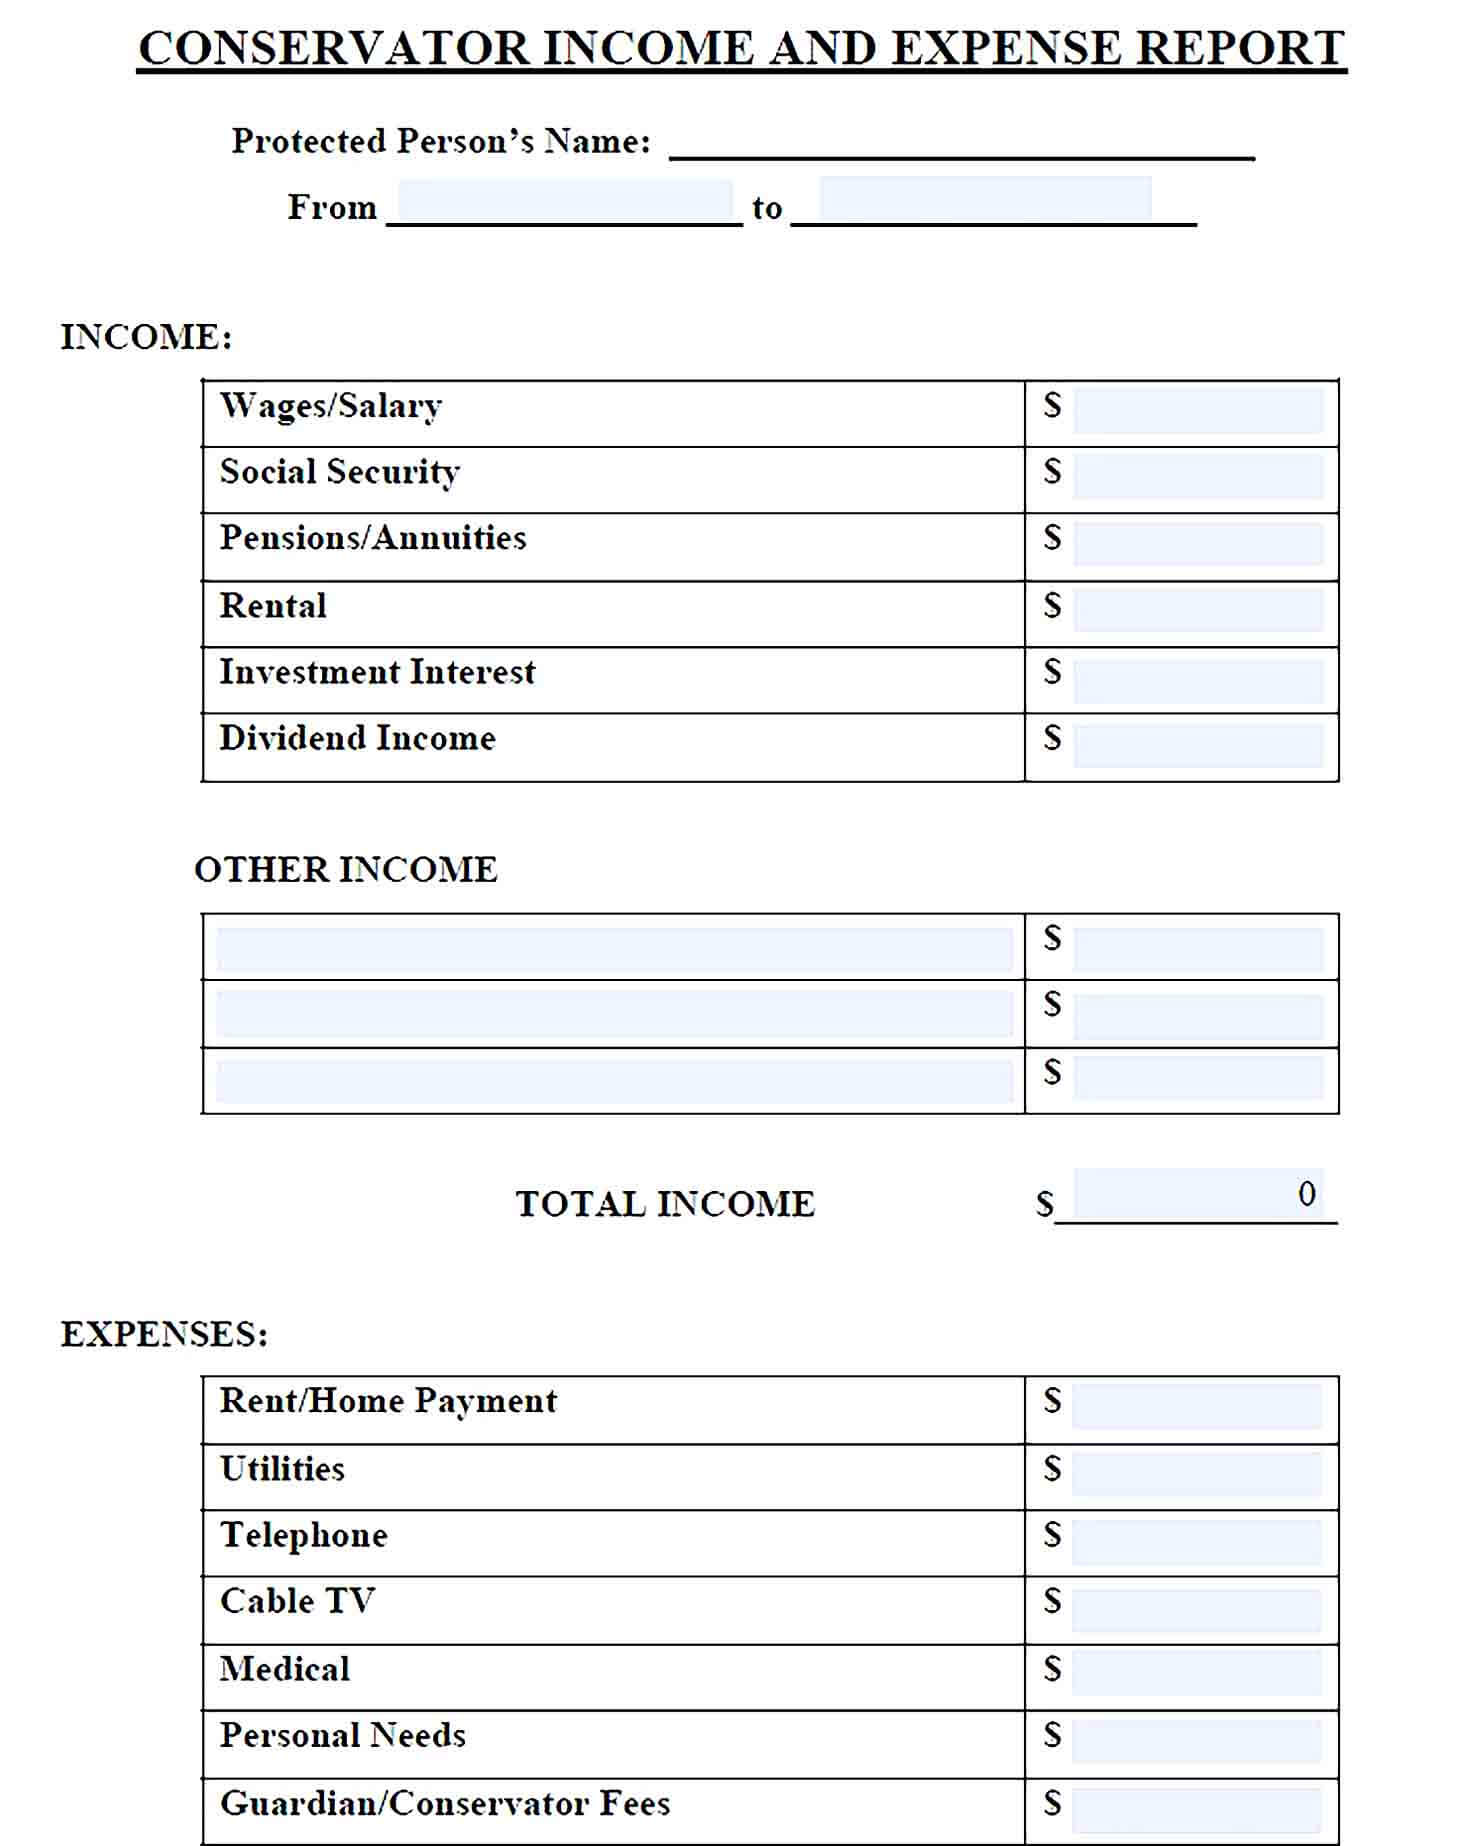 Sample Conservator Income And Expense Report